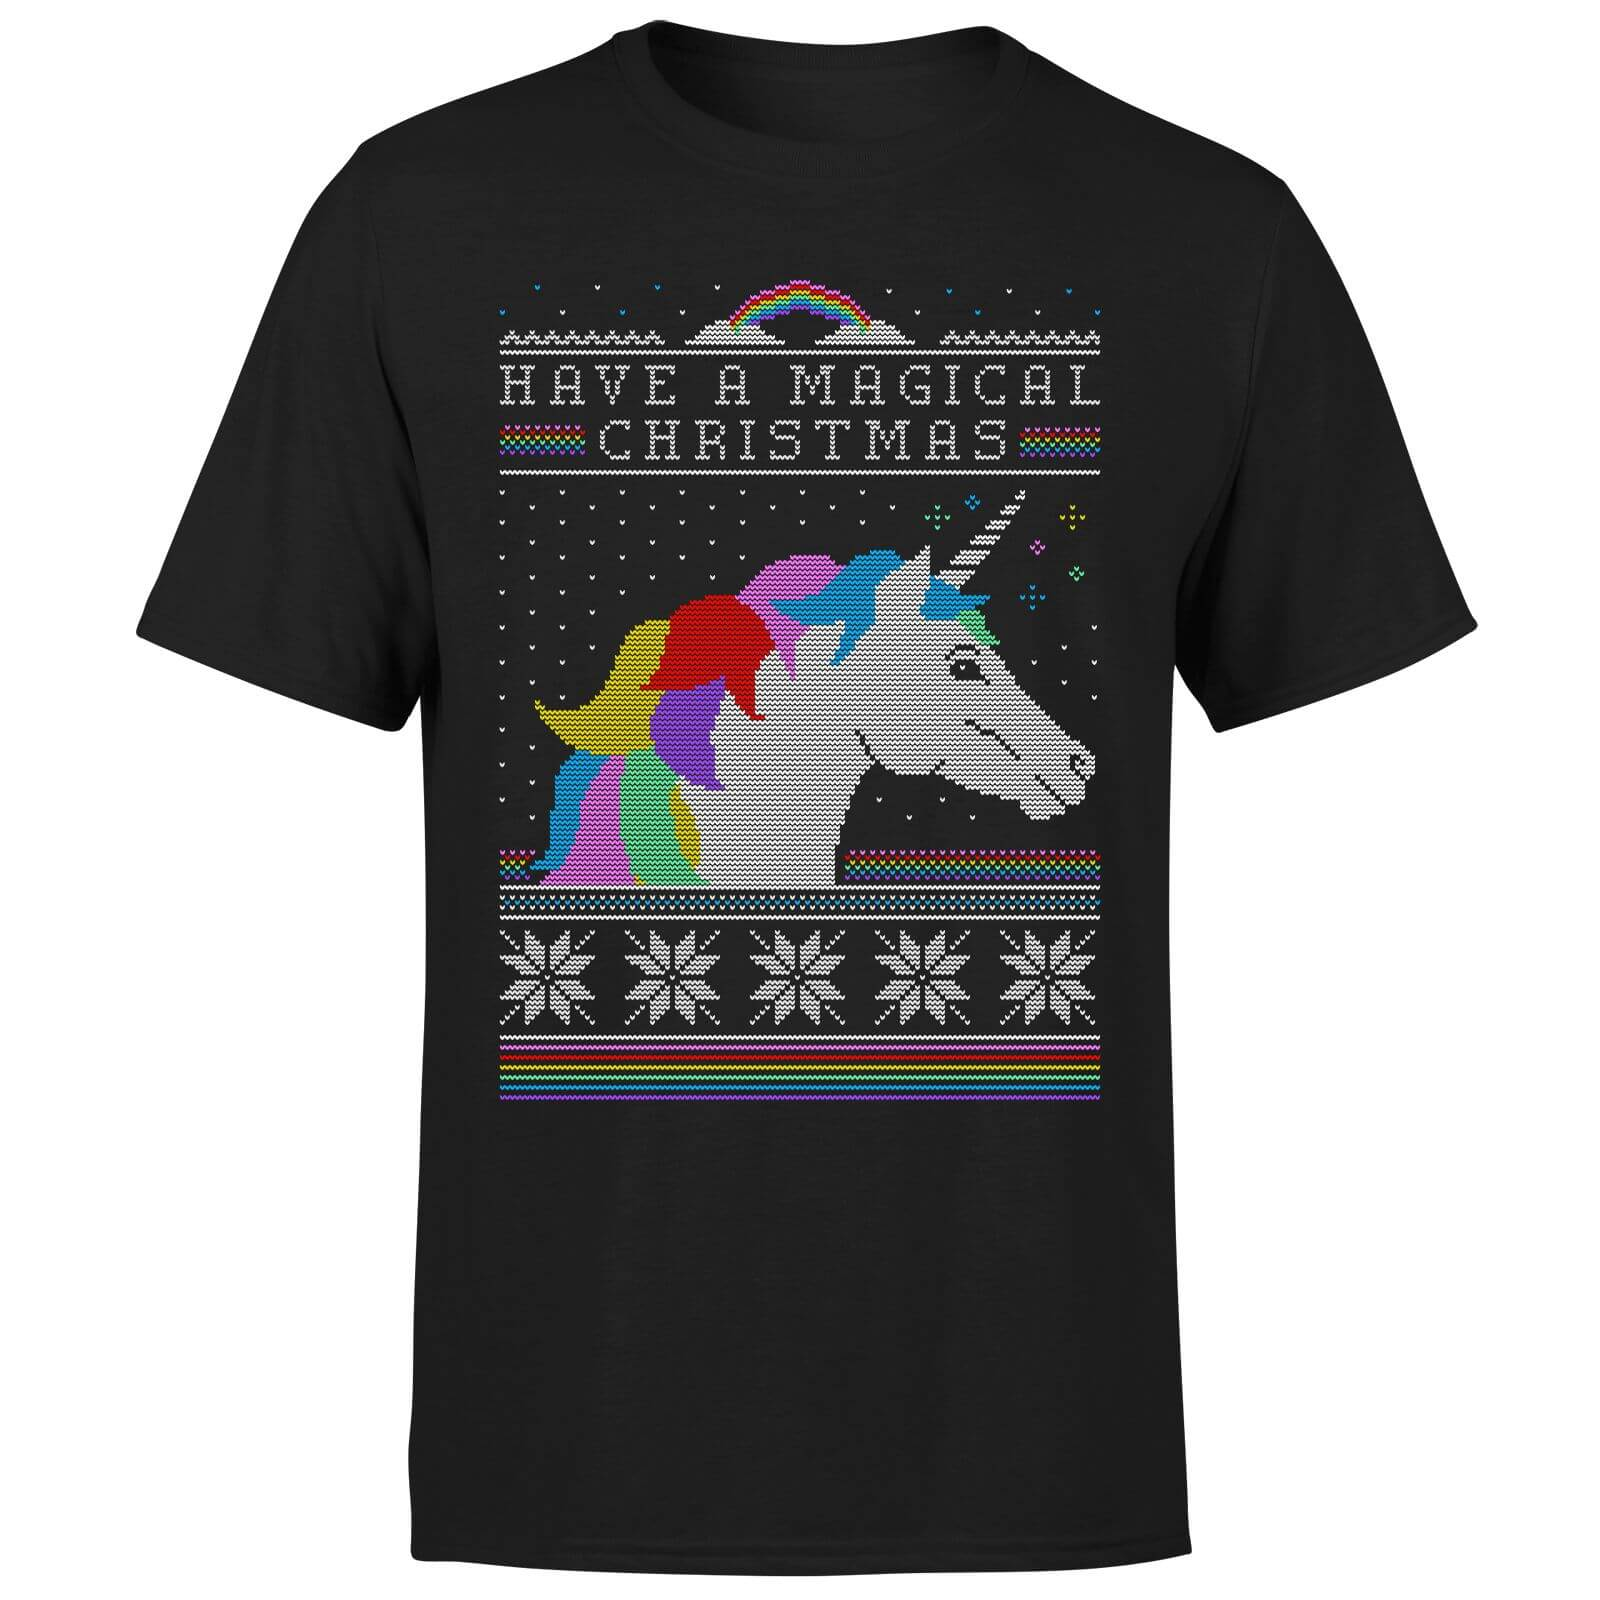 Have a magical Christmas Fair isle T-Shirt - Black